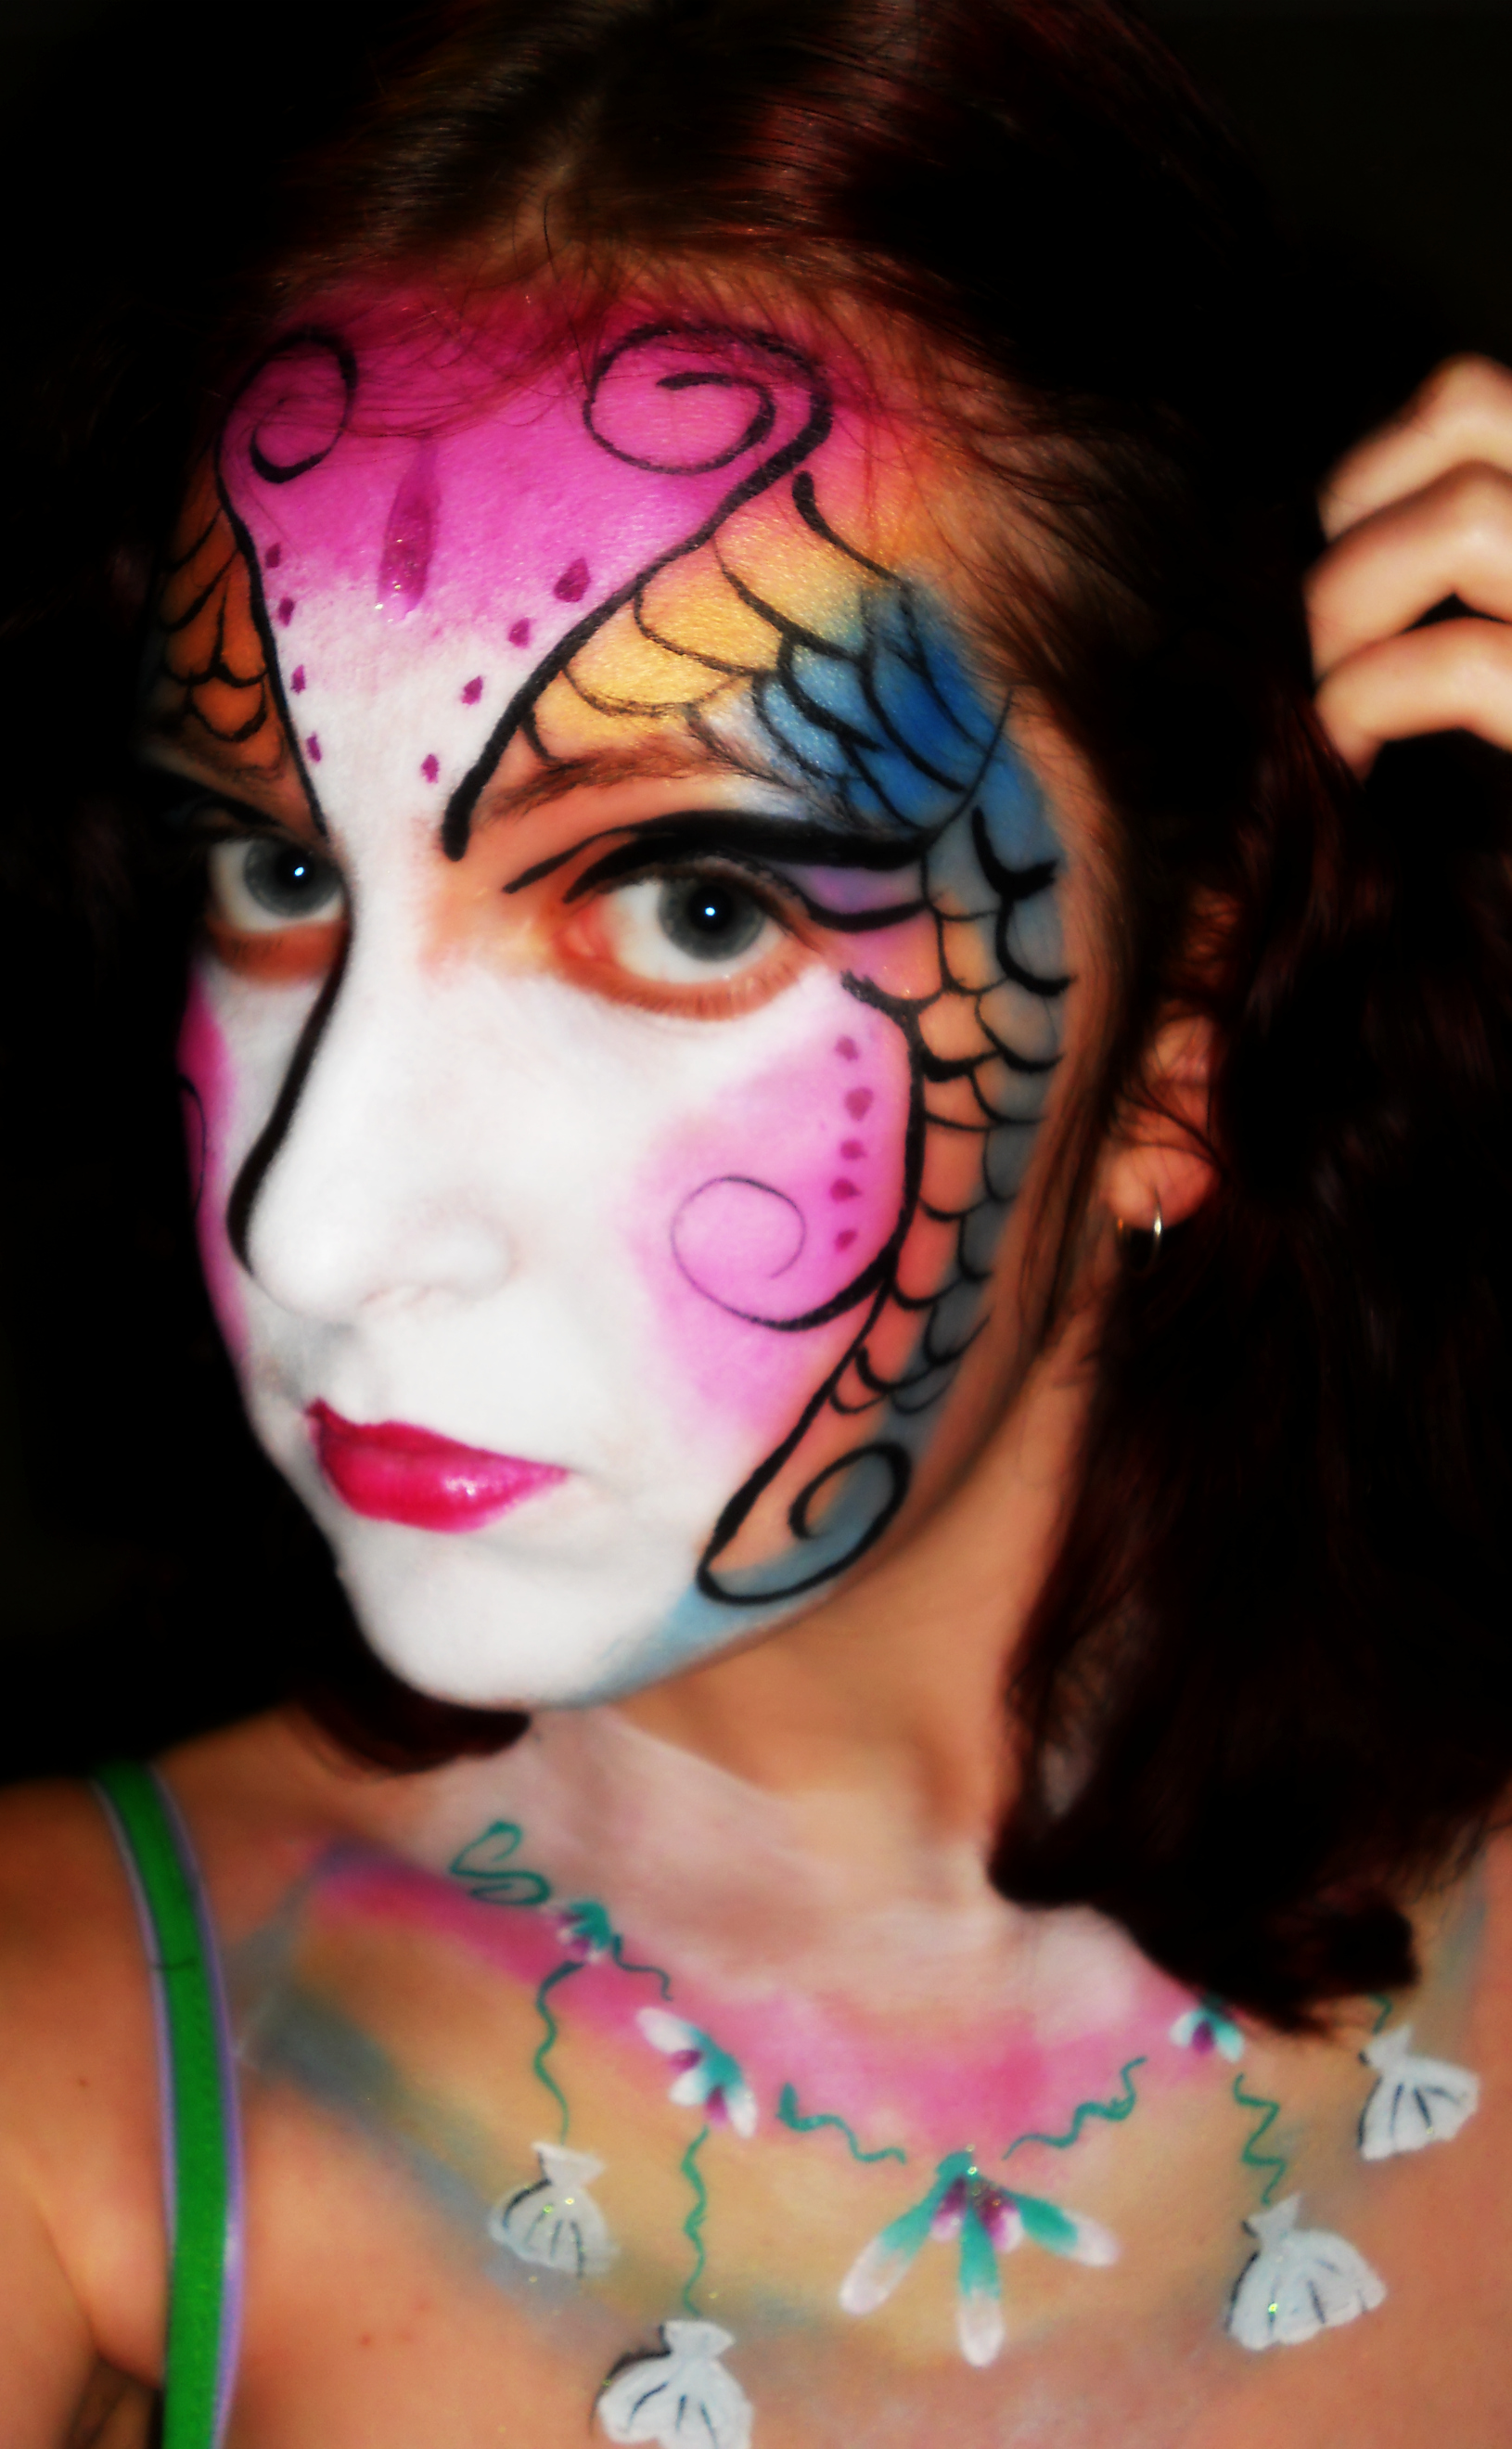 Face Paint 3 by Katies-Cosplay on DeviantArt